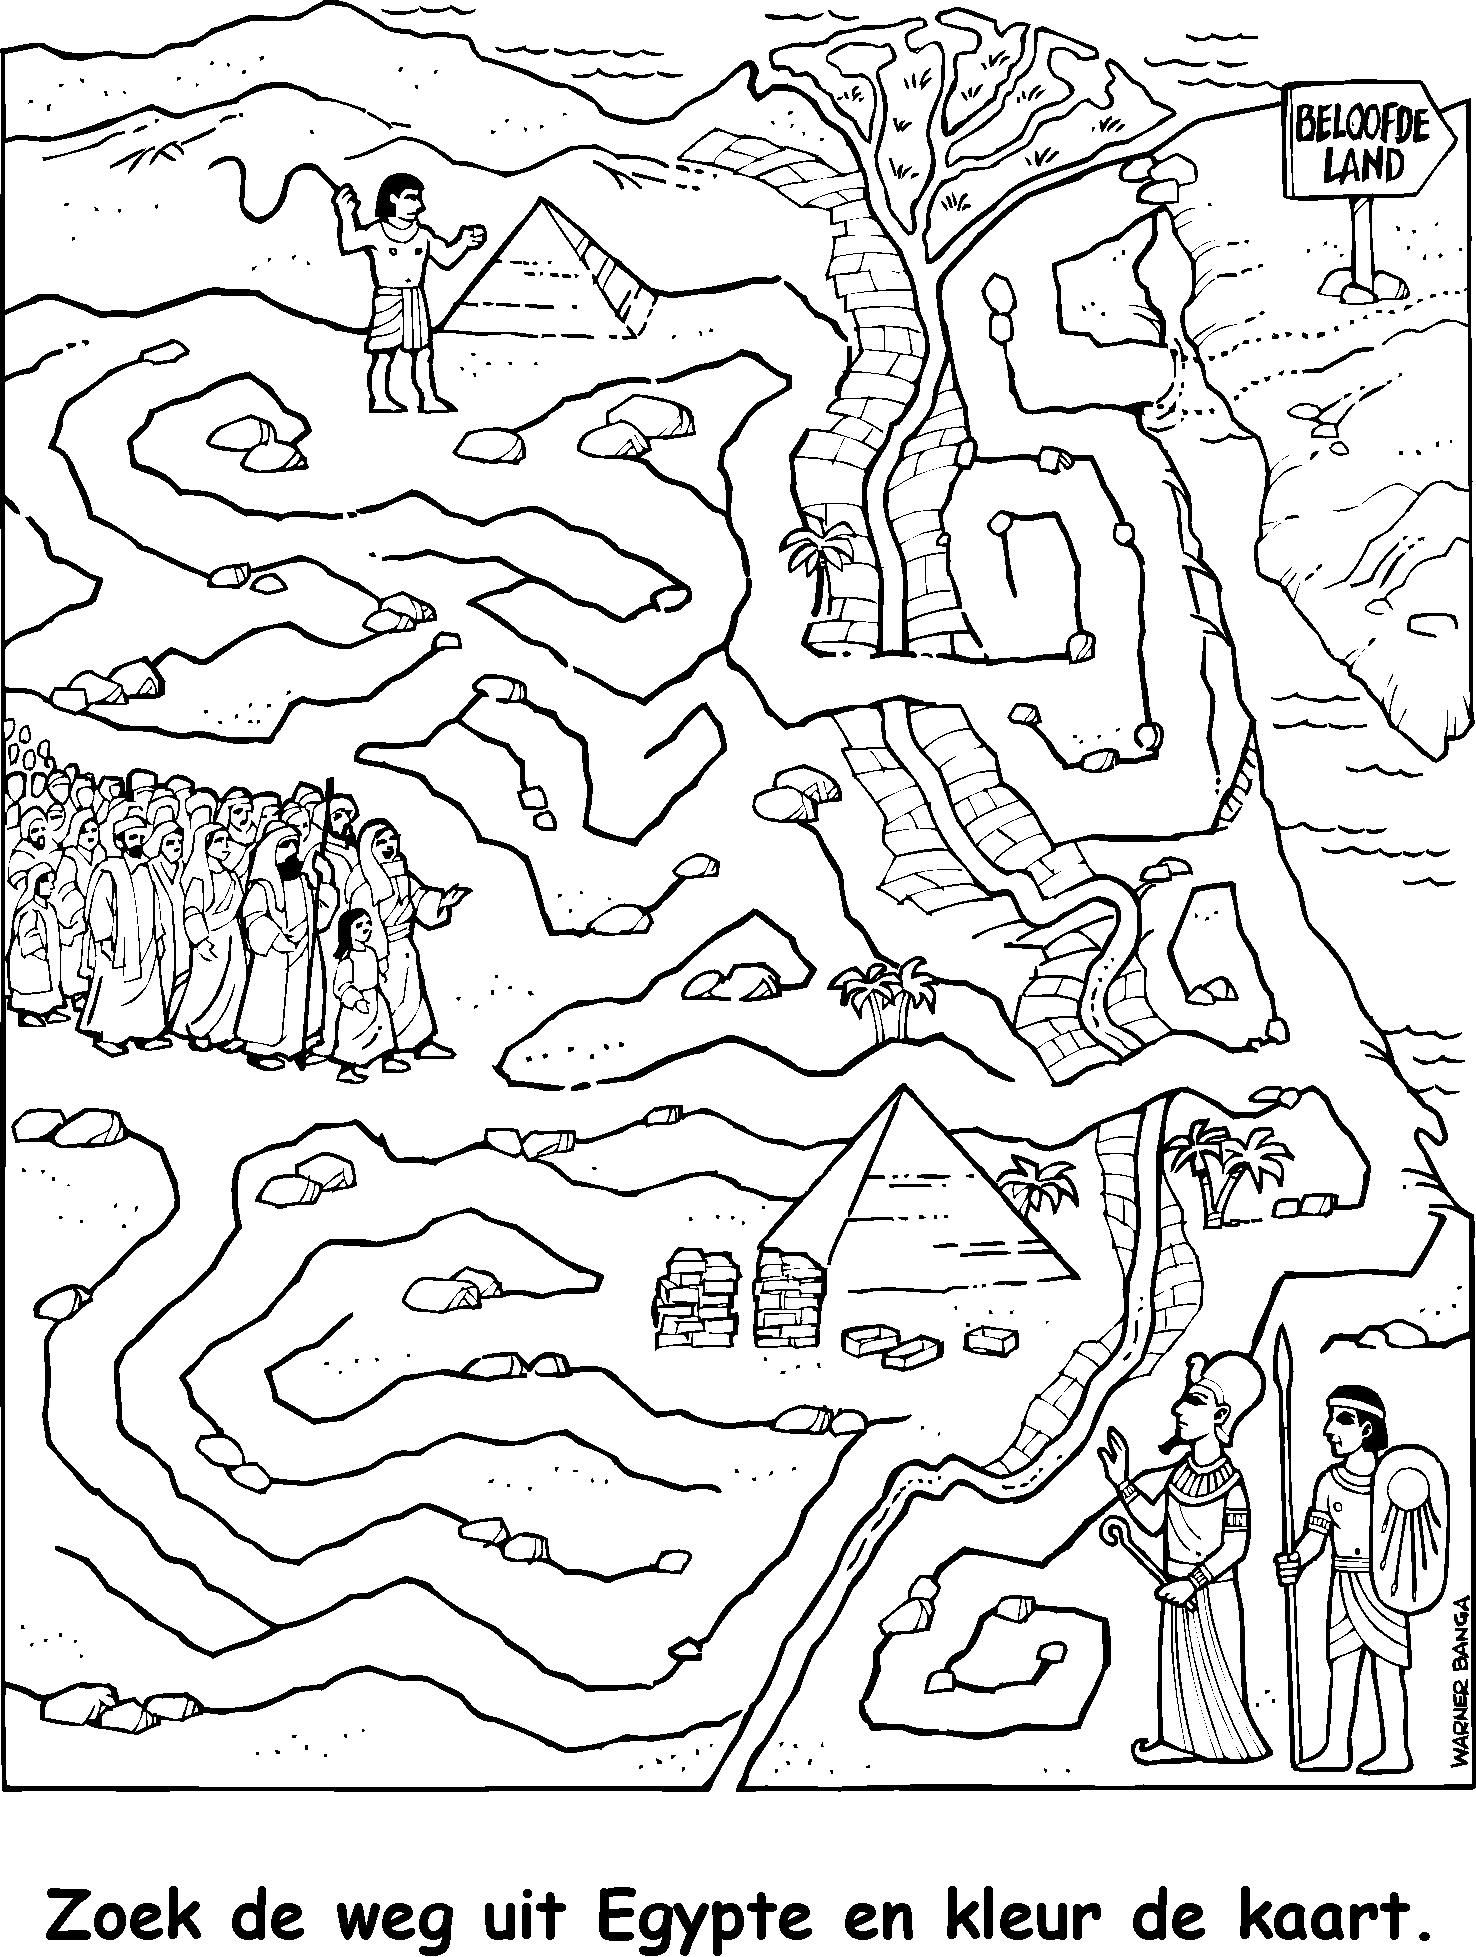 map of egypt coloring page quotfind the way out of egypt and color the mapquot sign points map of coloring egypt page